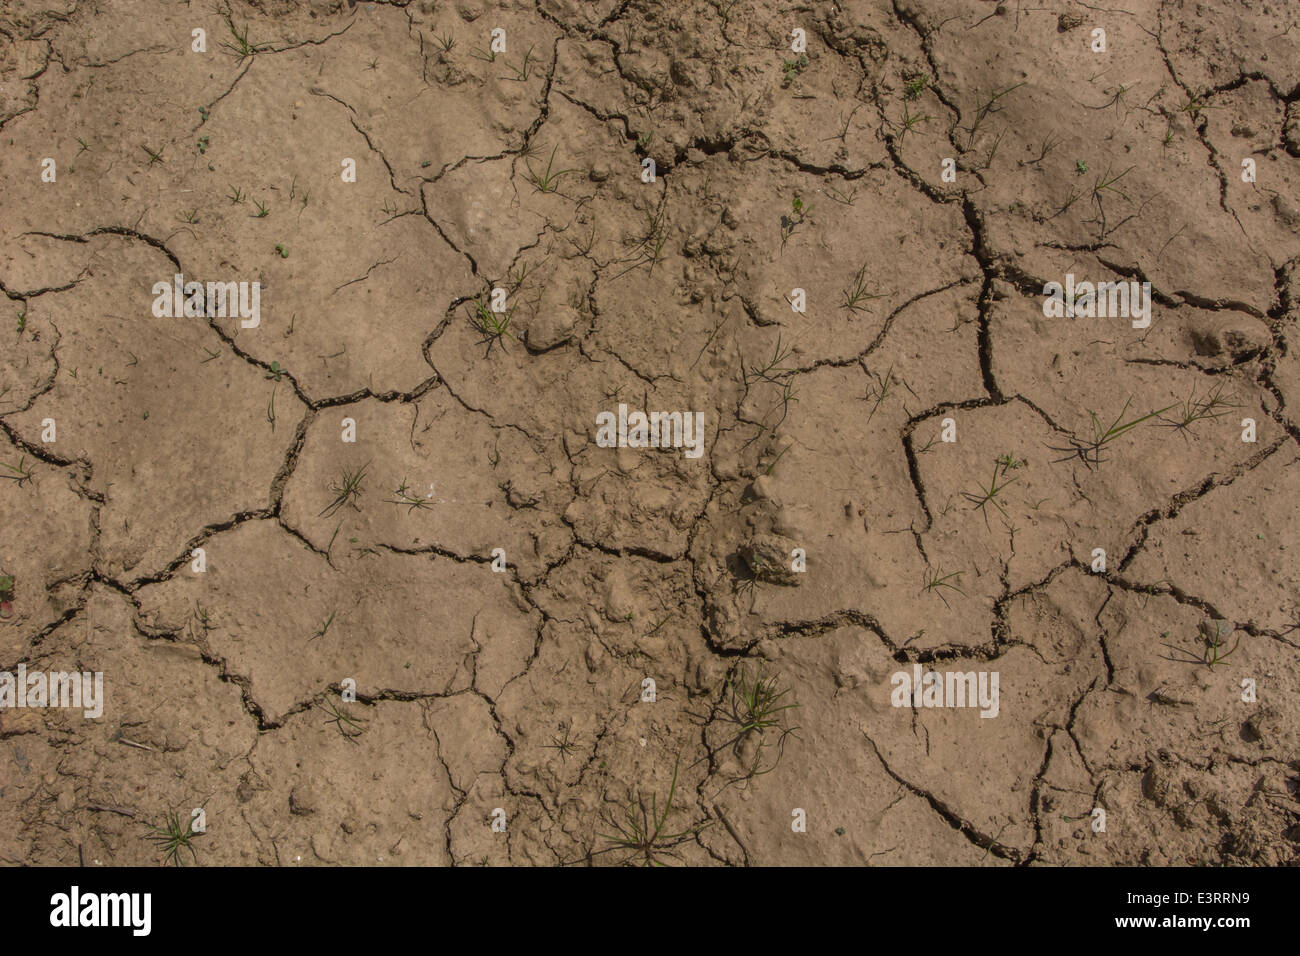 UK drought / Signs of pending water shortage as mud cracks in the heat. Metaphor for heatwave concept, heatwave - Stock Image